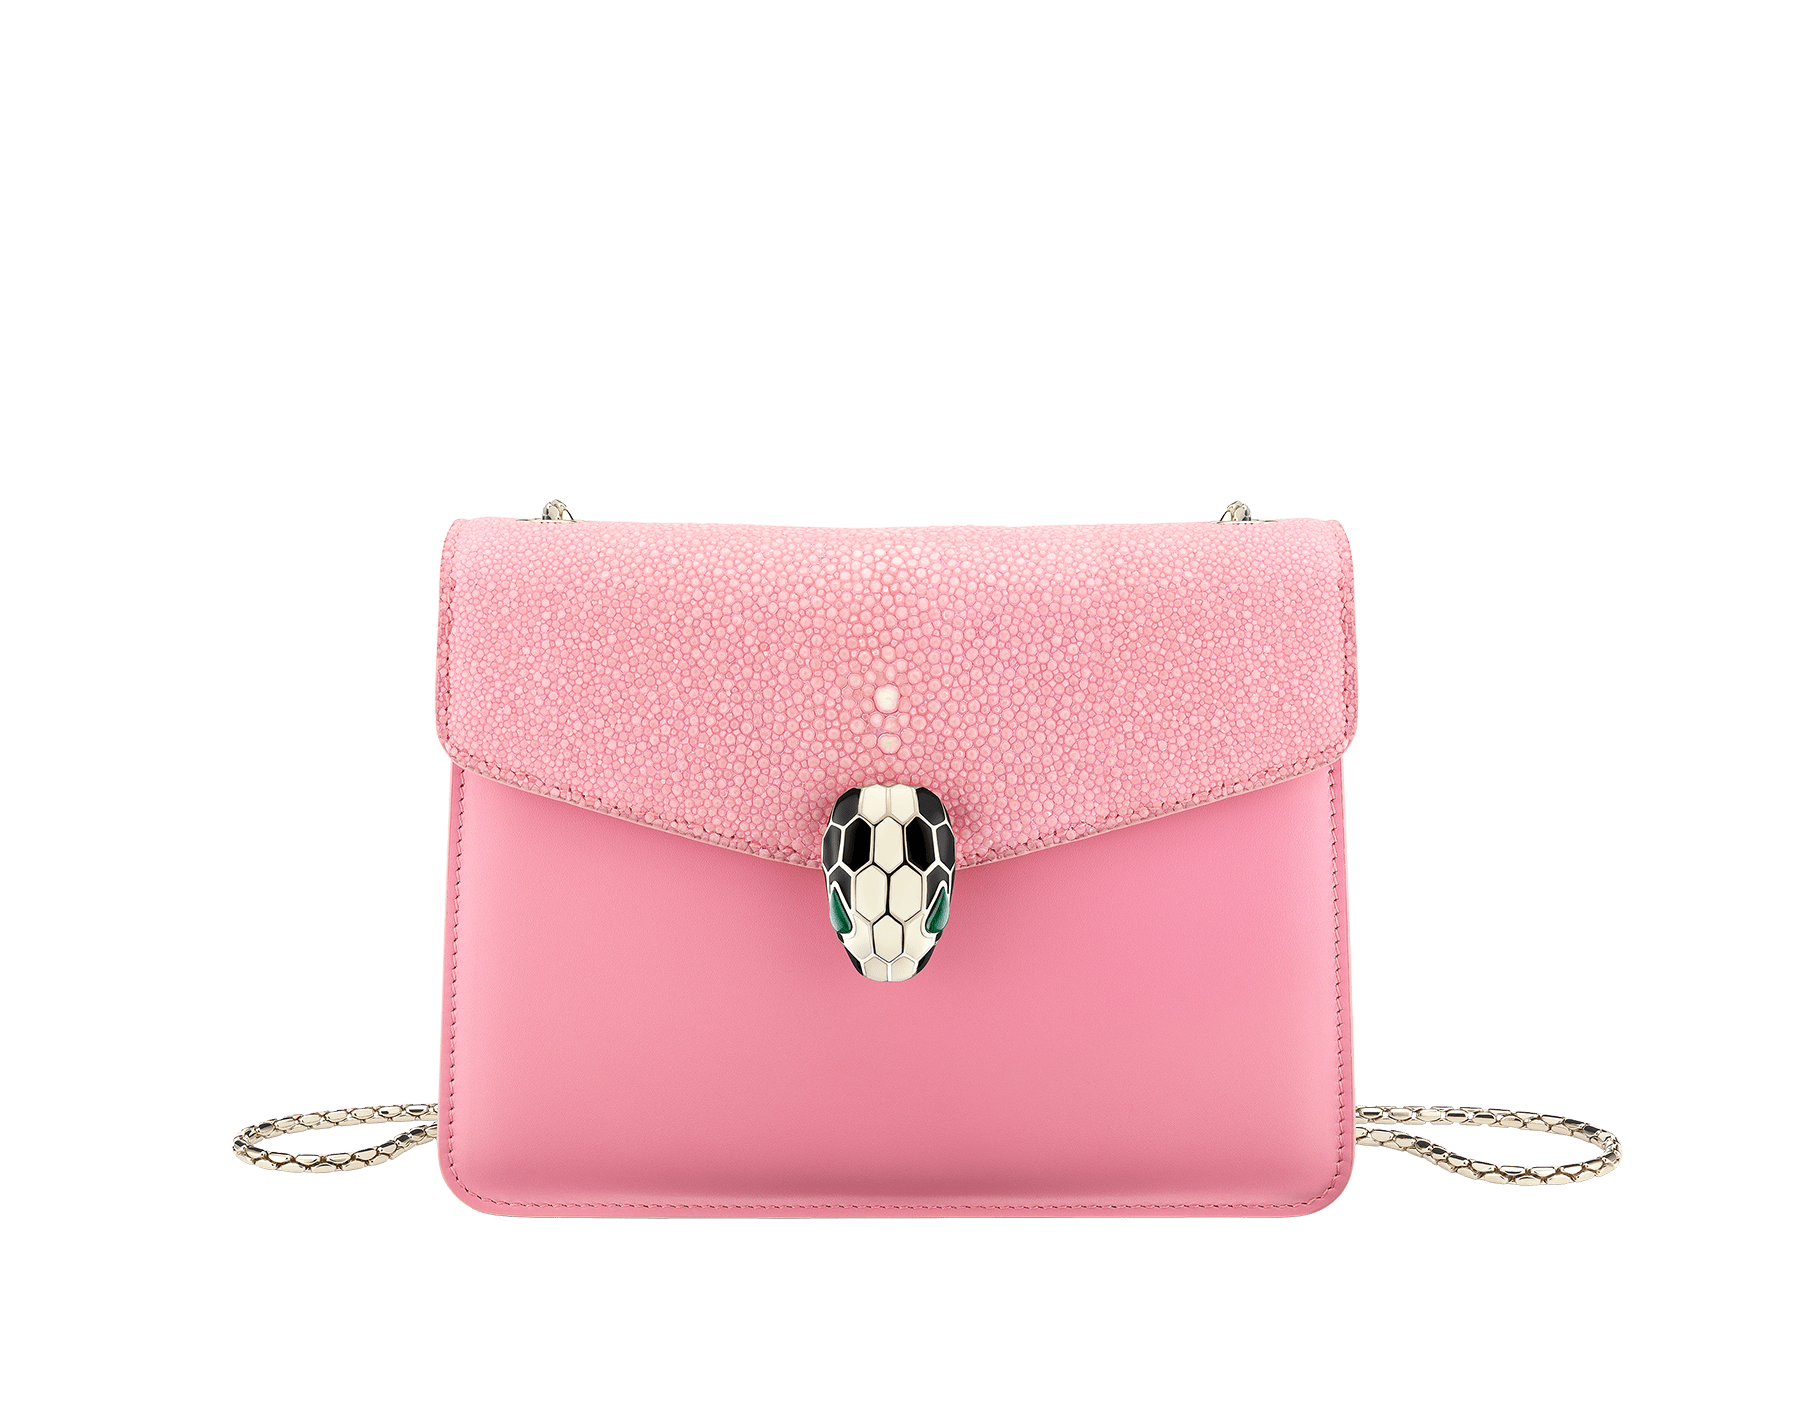 """""""Serpenti Forever"""" crossbody bag in candy quartz galuchat skin and calf leather. Iconic snakehead closure in light gold plated brass enriched with black and white enamel and green malachite eyes 287055 image 1"""